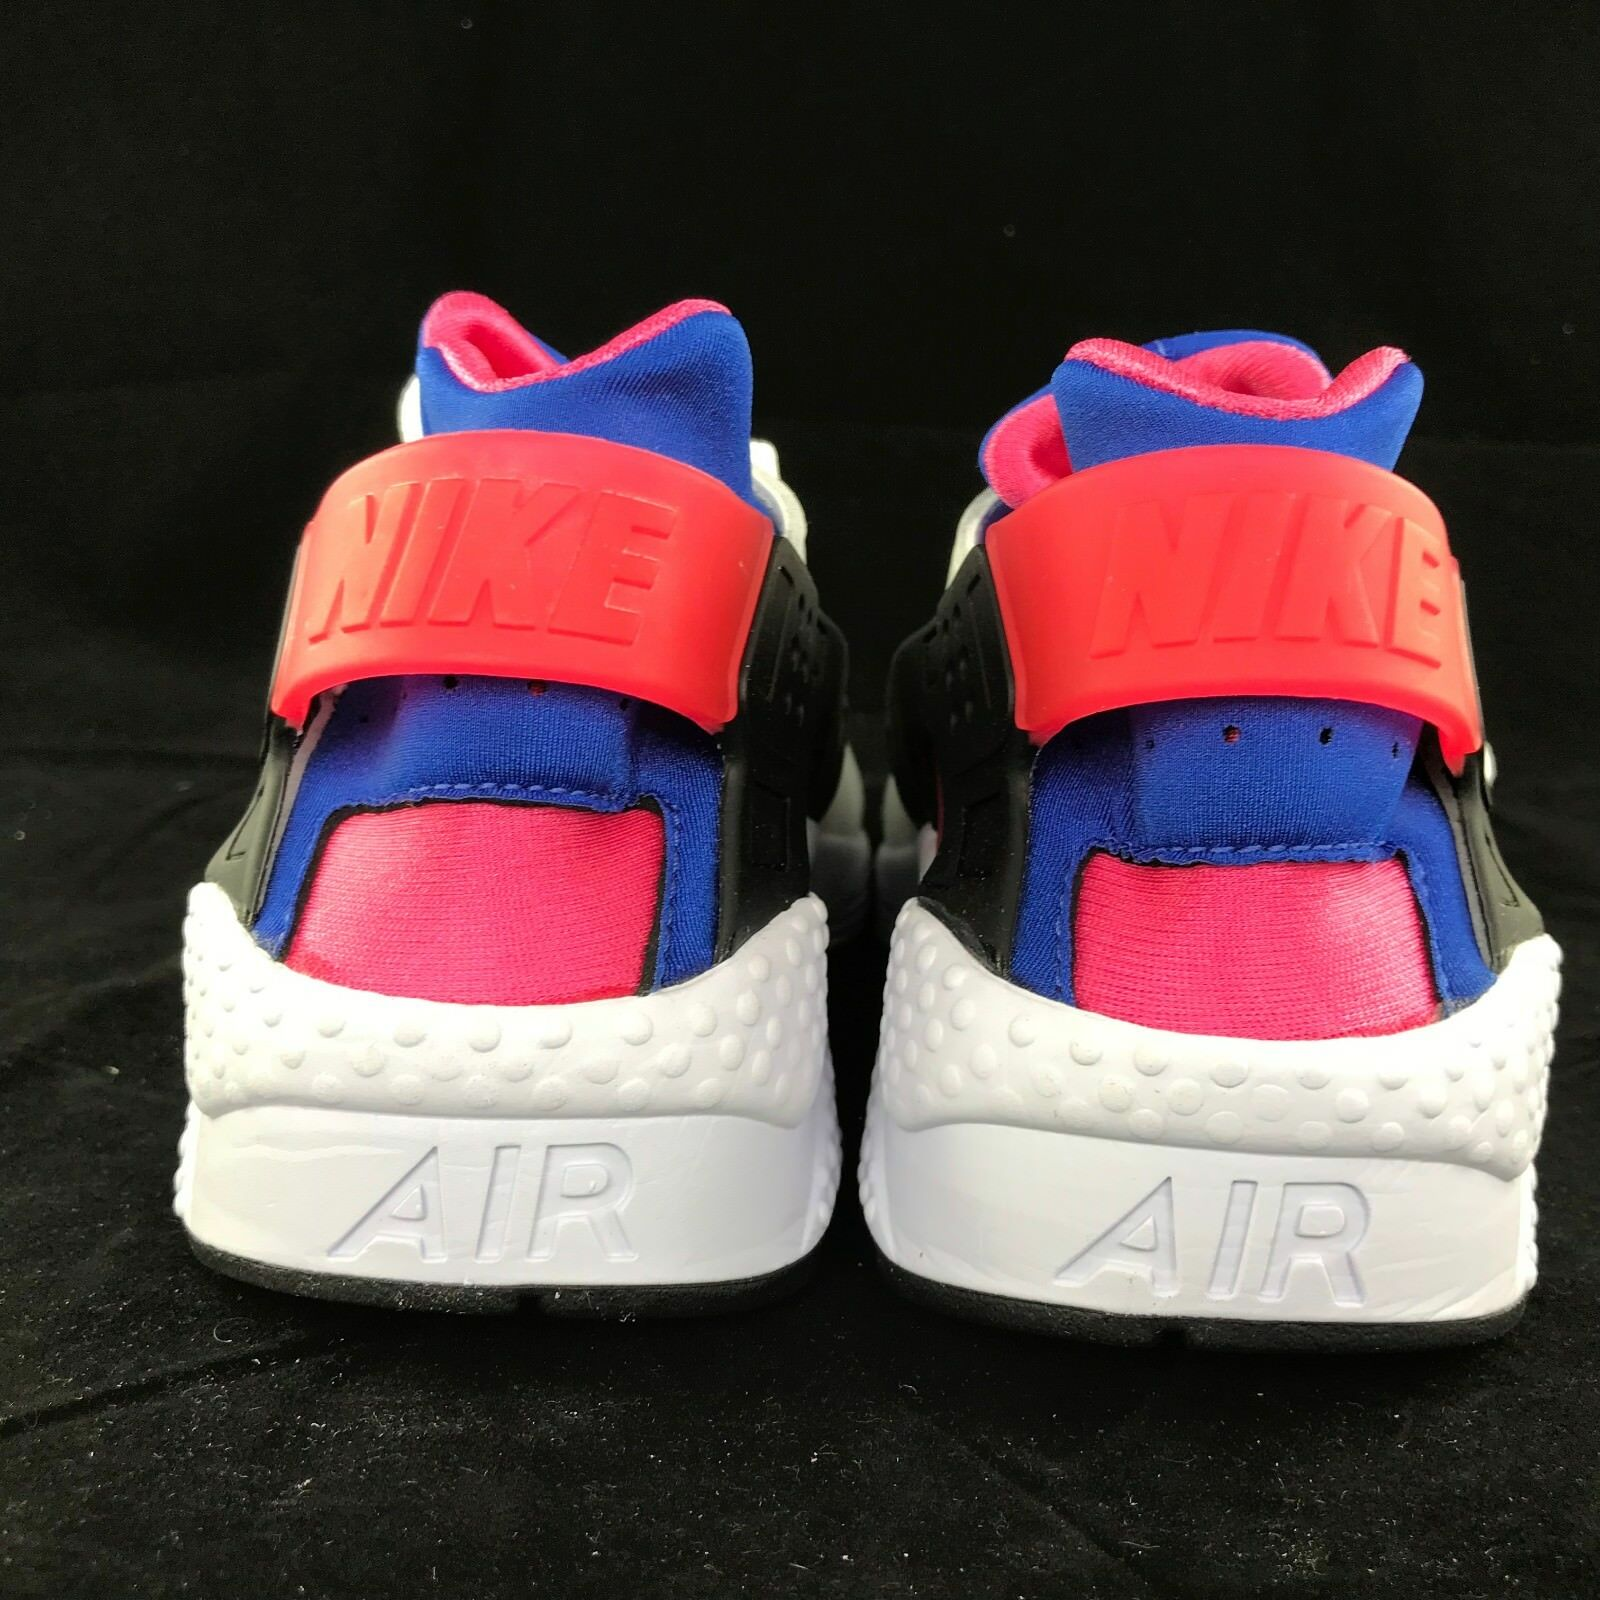 nike air huarache royal run '91 - weiße royal huarache blue pink schwarz ah8049-100 männer 7.5-12 4be8e2